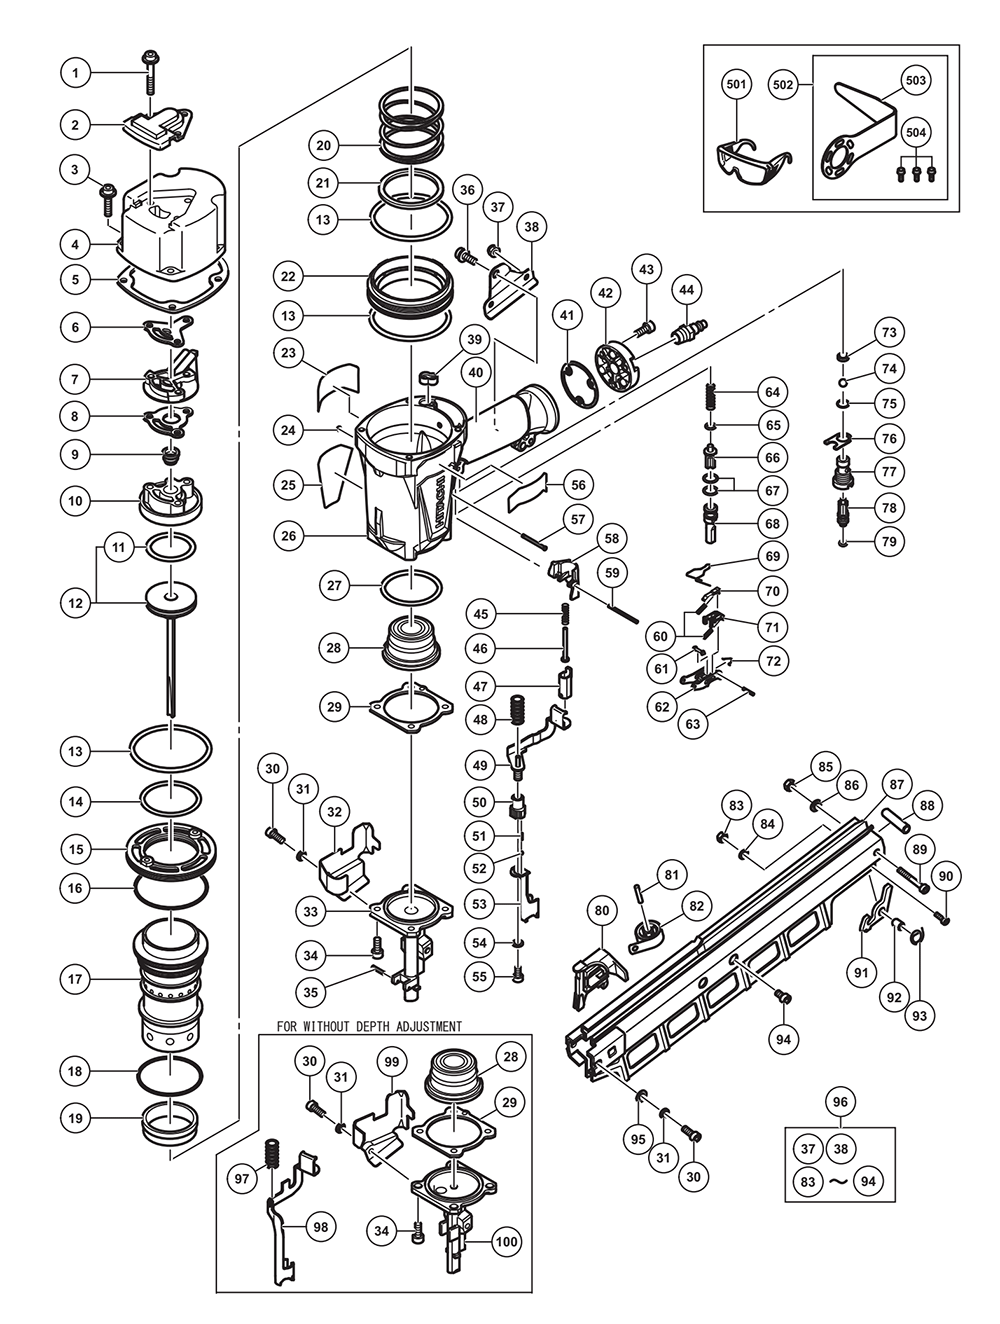 hight resolution of hitachi nr83a5 s parts schematic